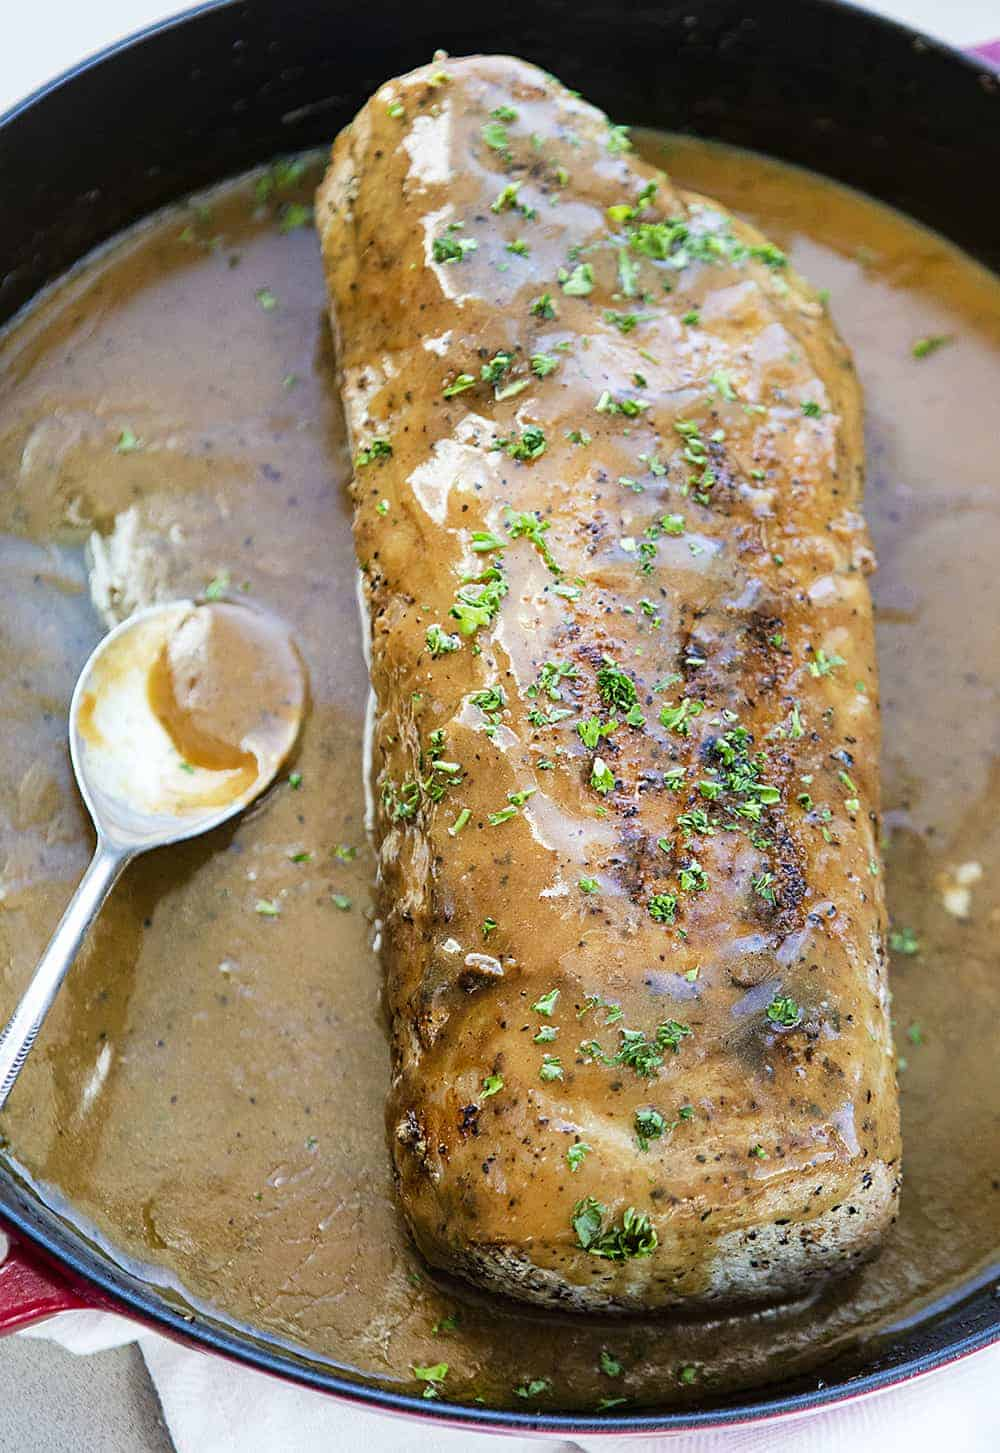 Roasted Pork Loin with Gravy in a Skillet with Spoon